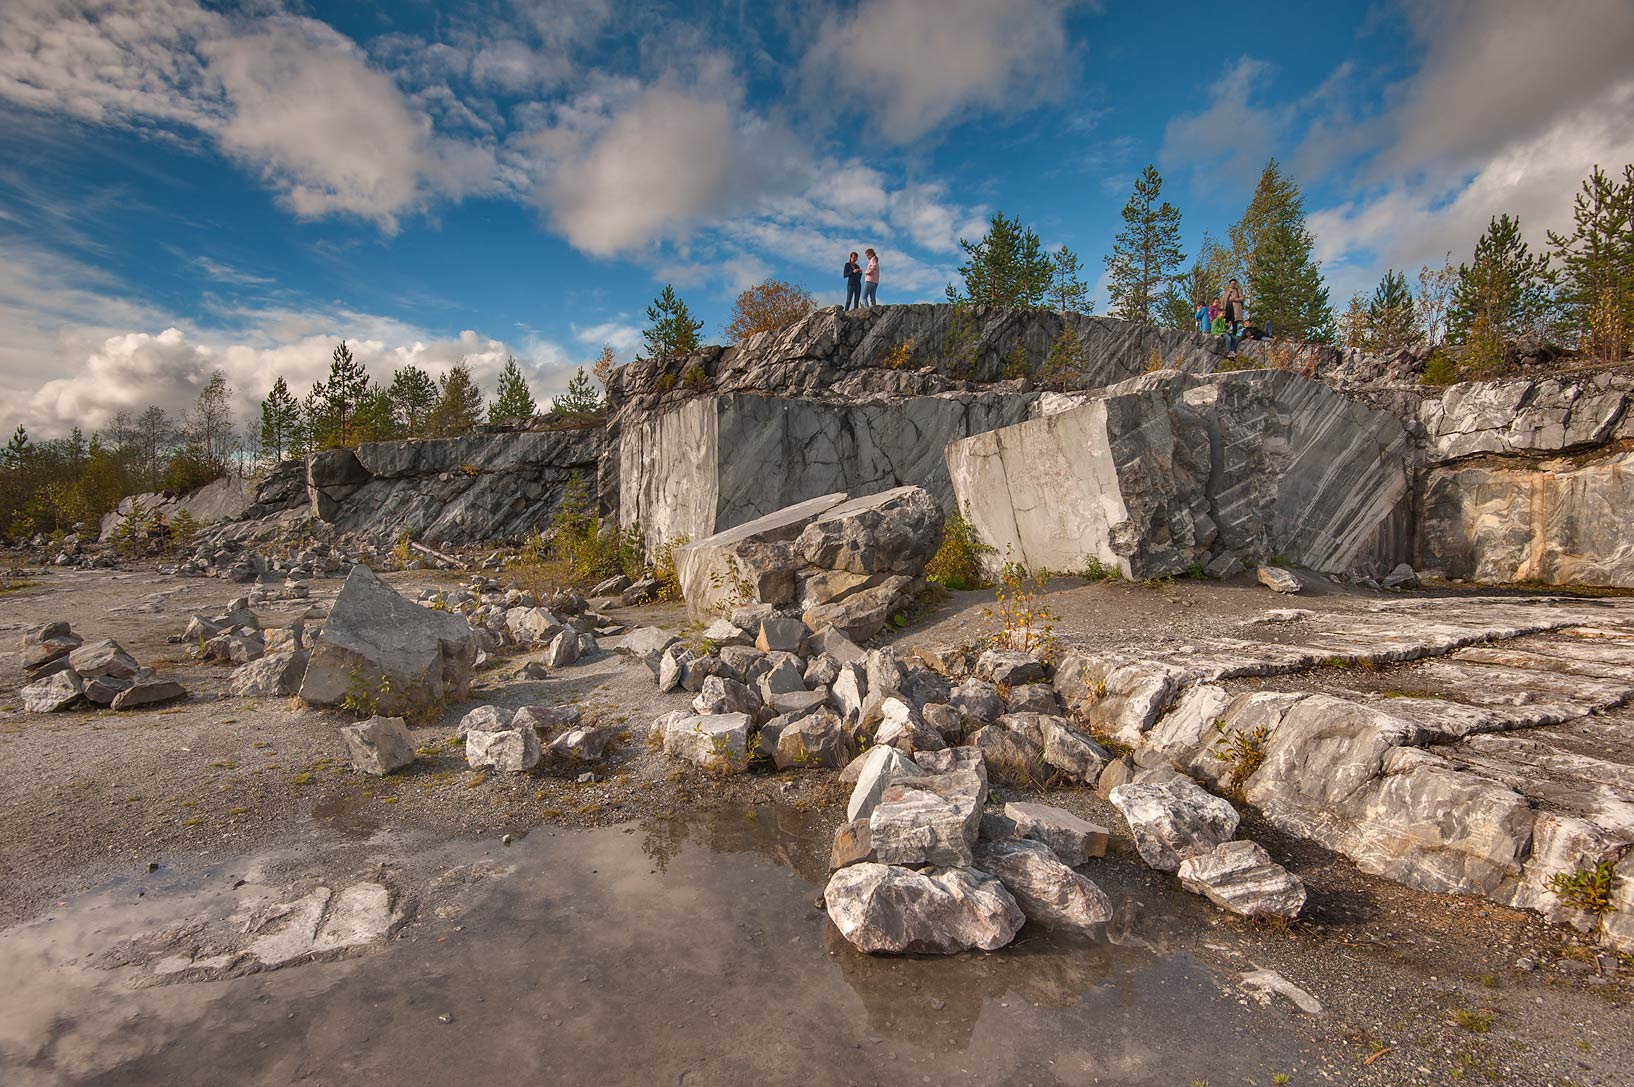 Rocks of abandoned marble quarry in Ruskeala Mountain Park. Karelia, Russia